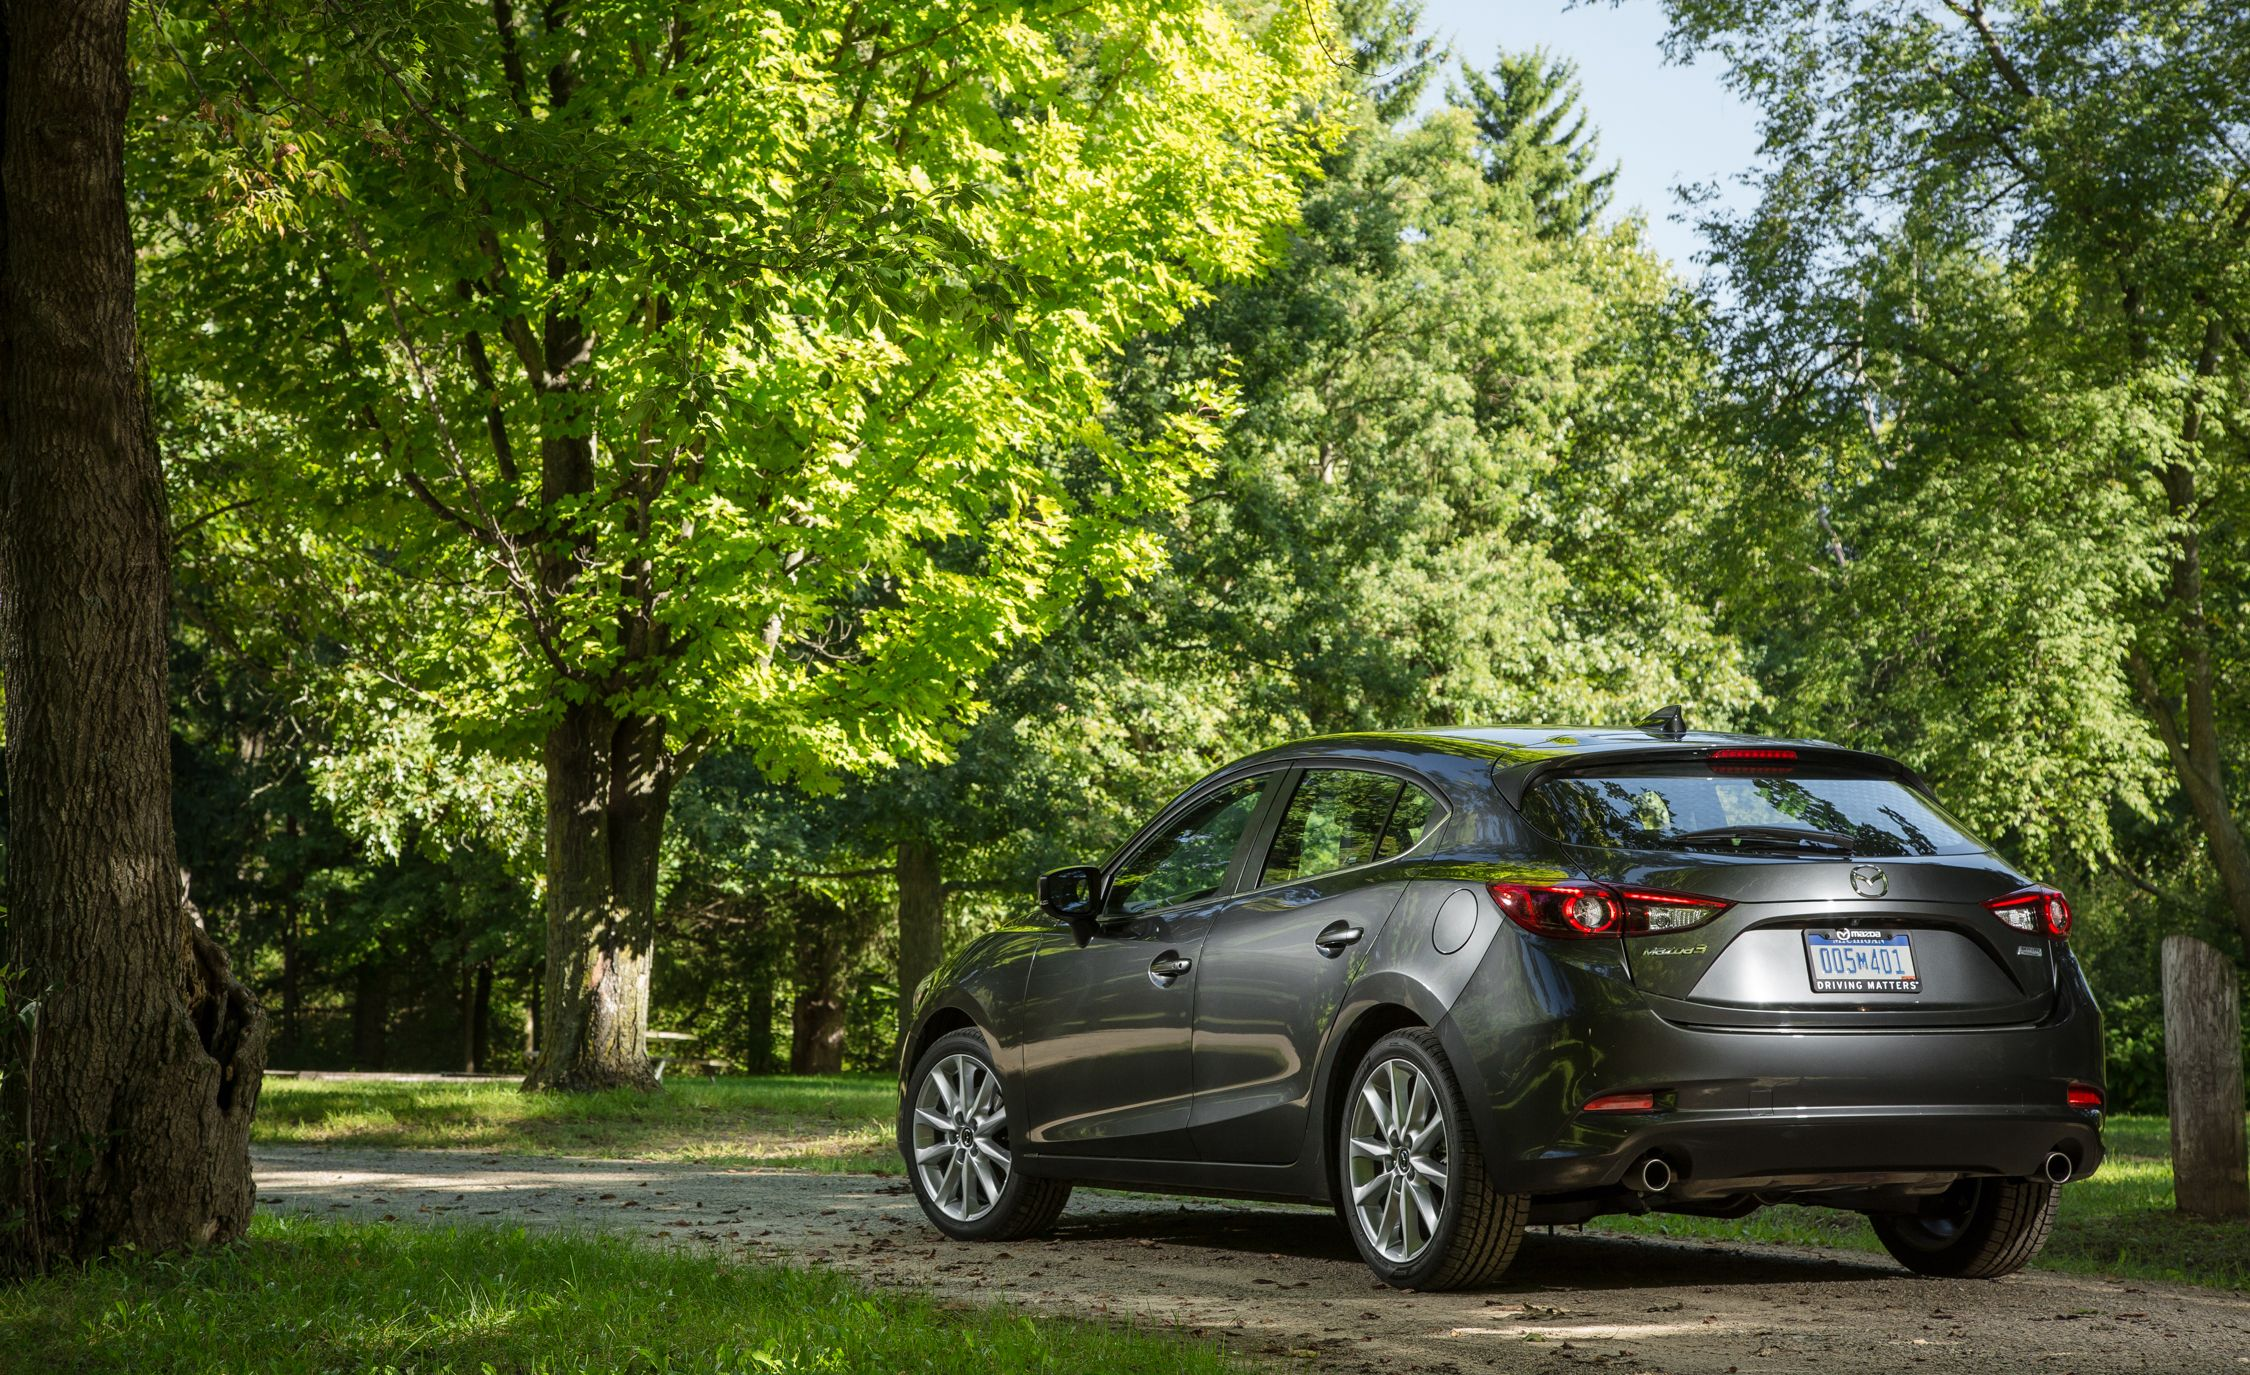 2018 Mazda 3 Cargo Space and Storage Review